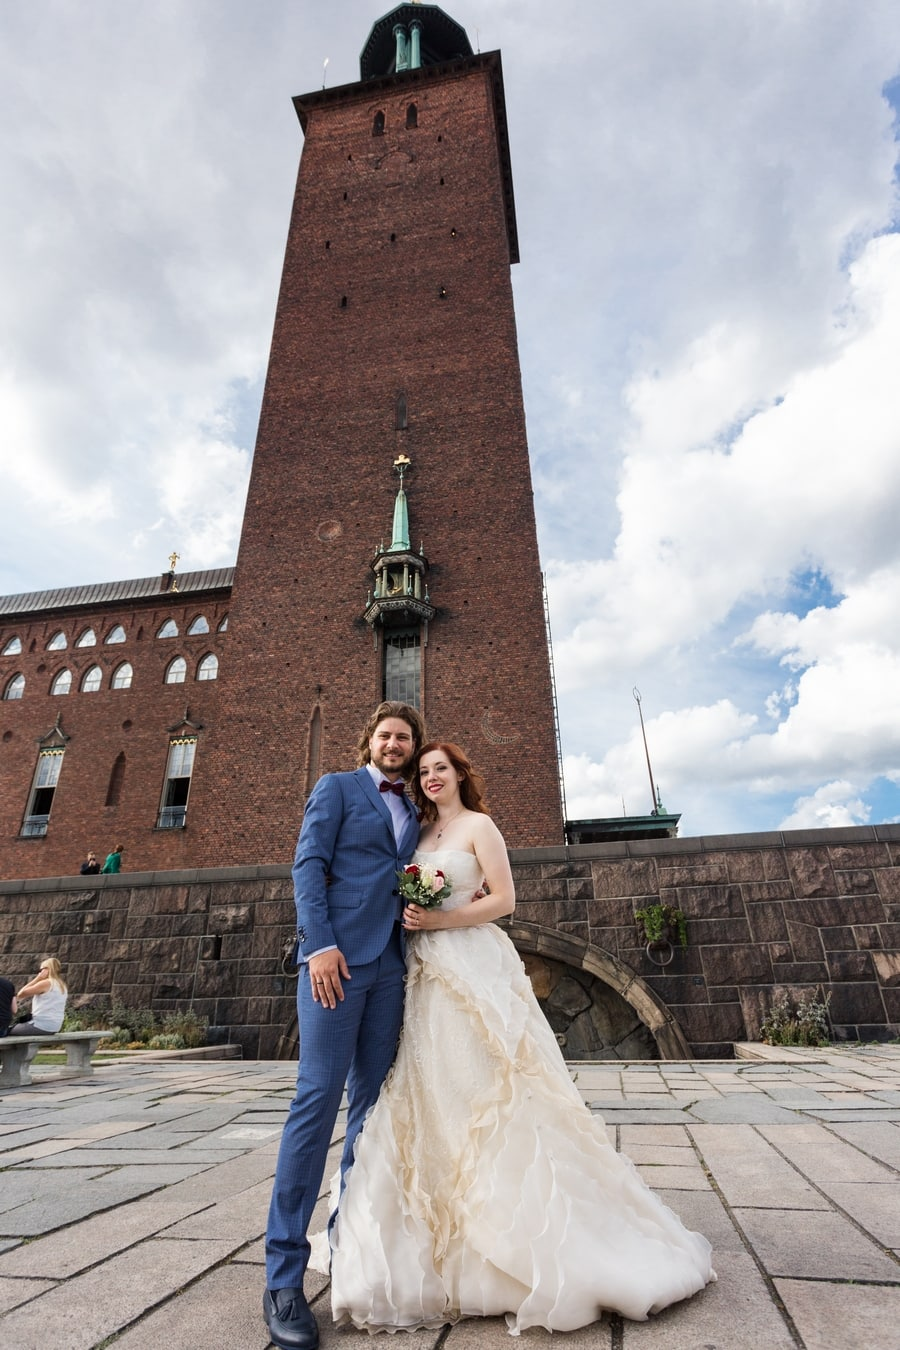 My Stockholm wedding: how I organized a wedding abroad